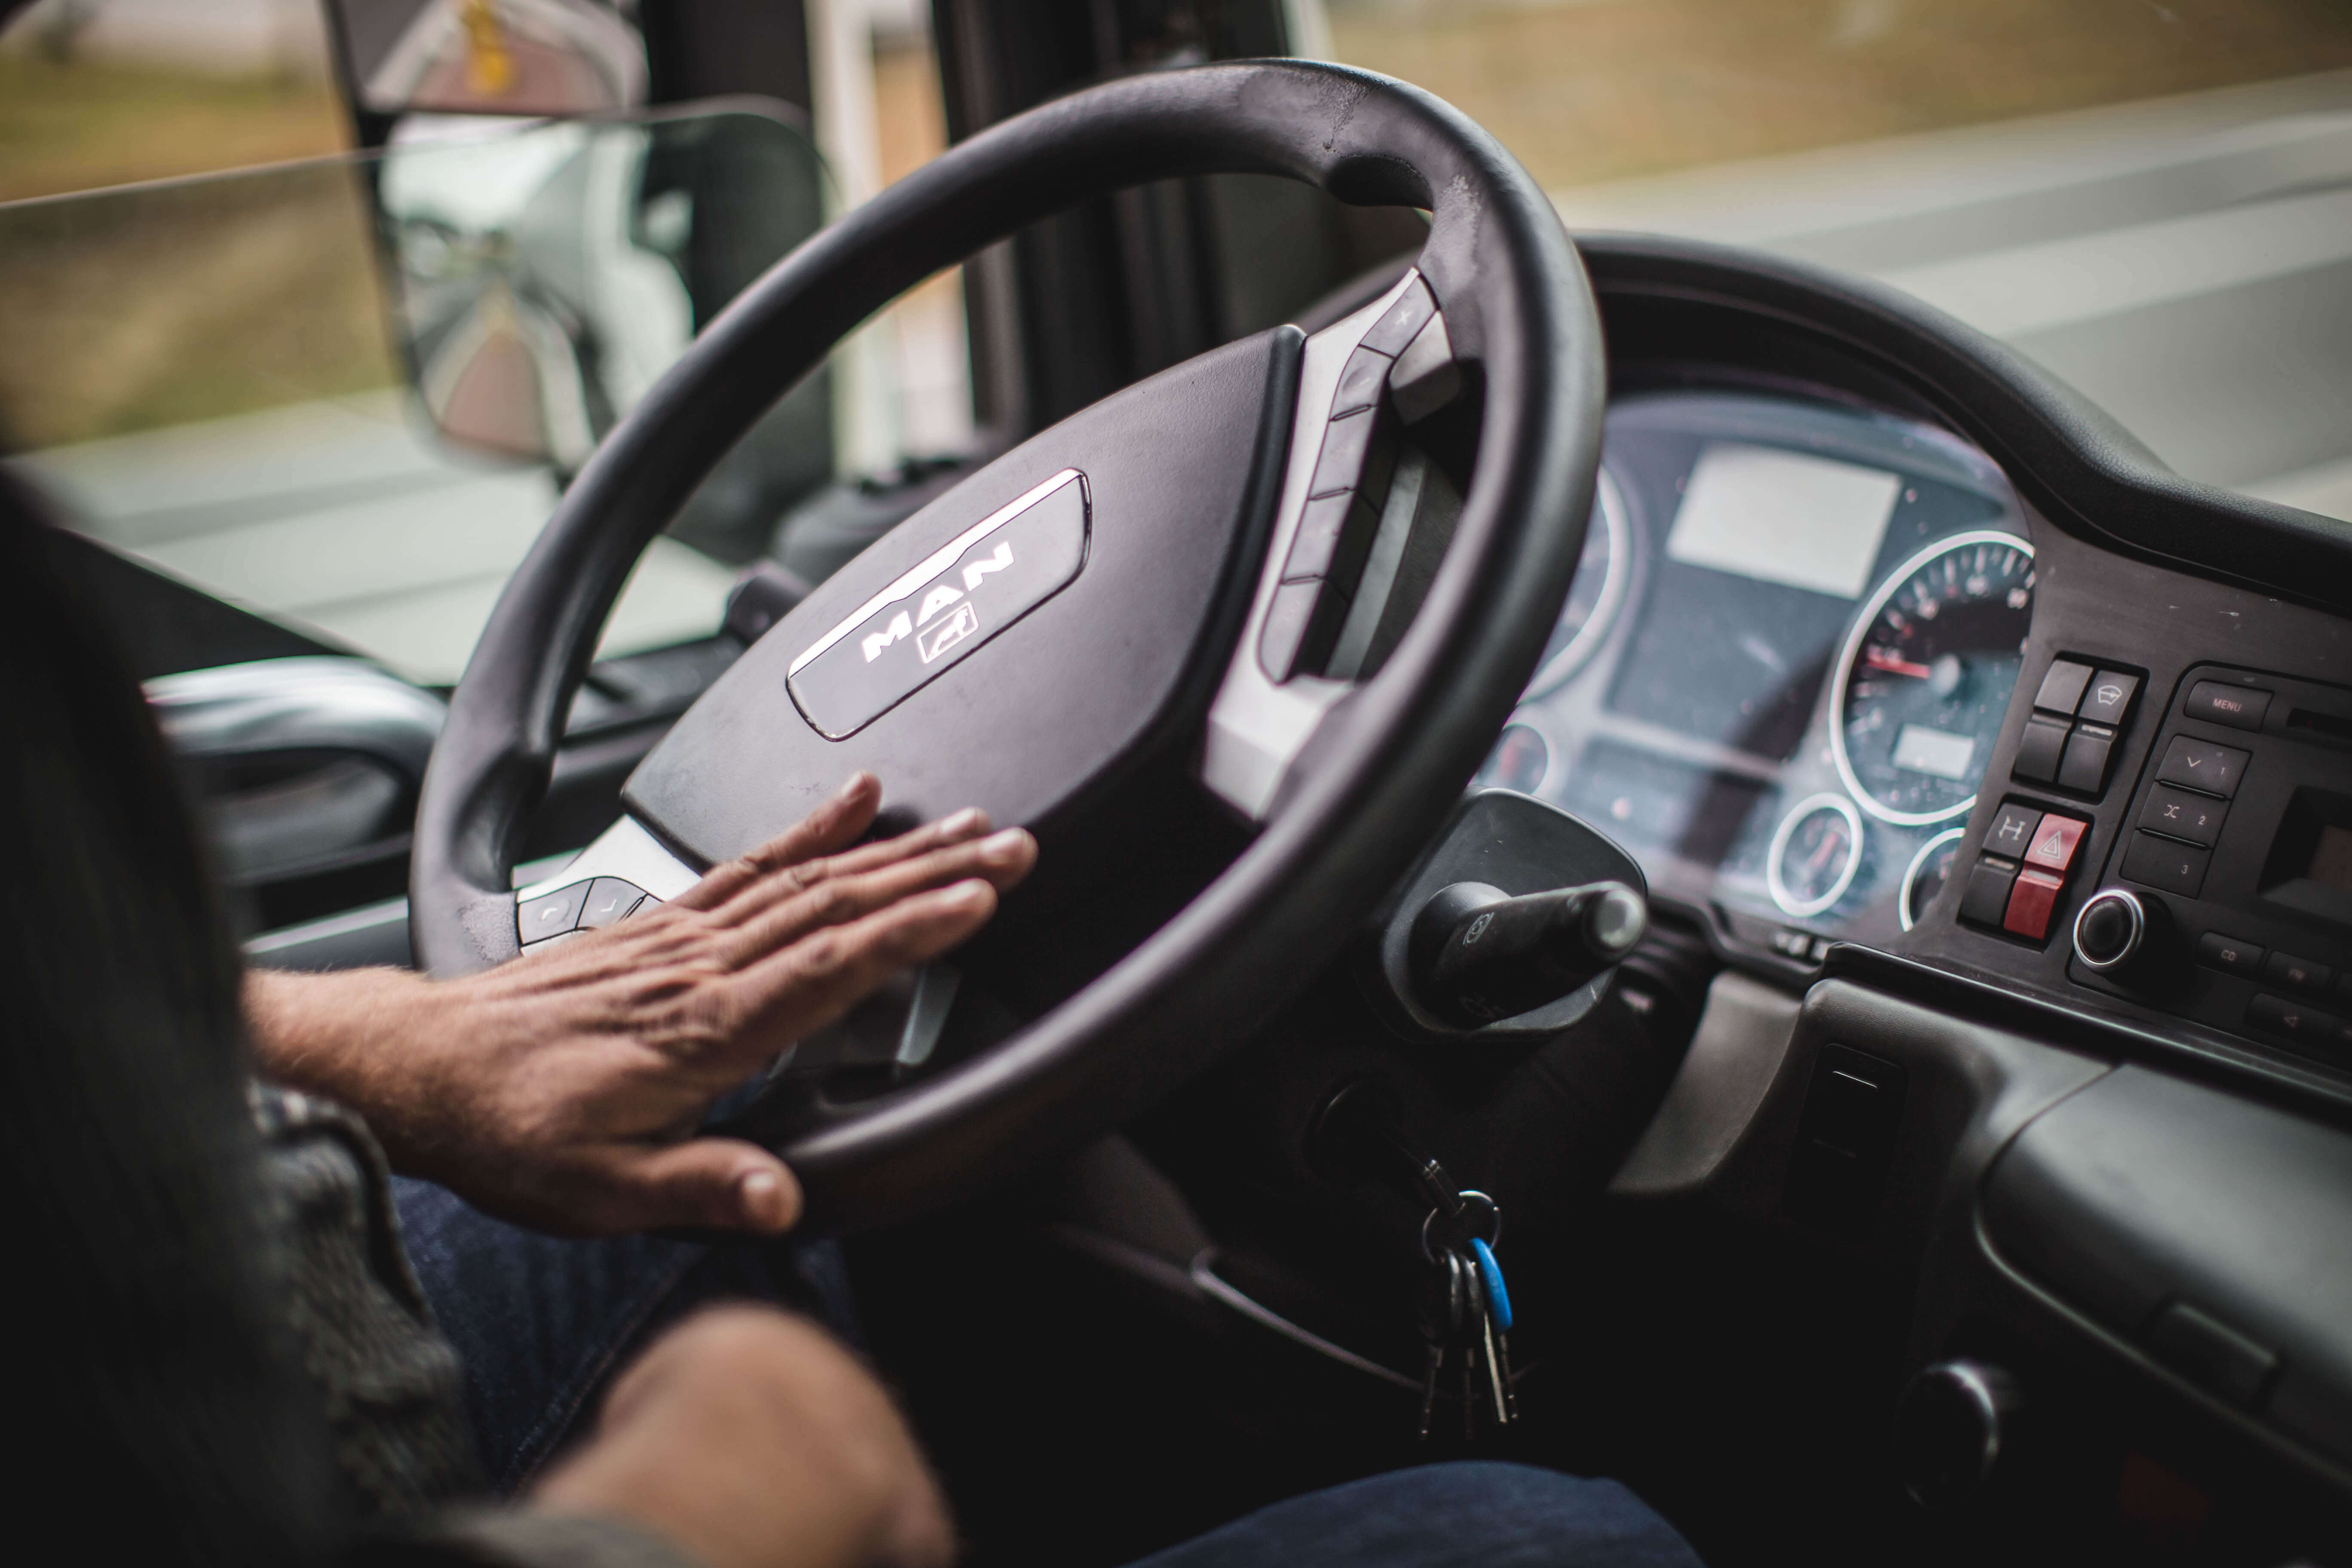 Worcestershire driving instructor says HGV testing backlog will take 18 months to clear